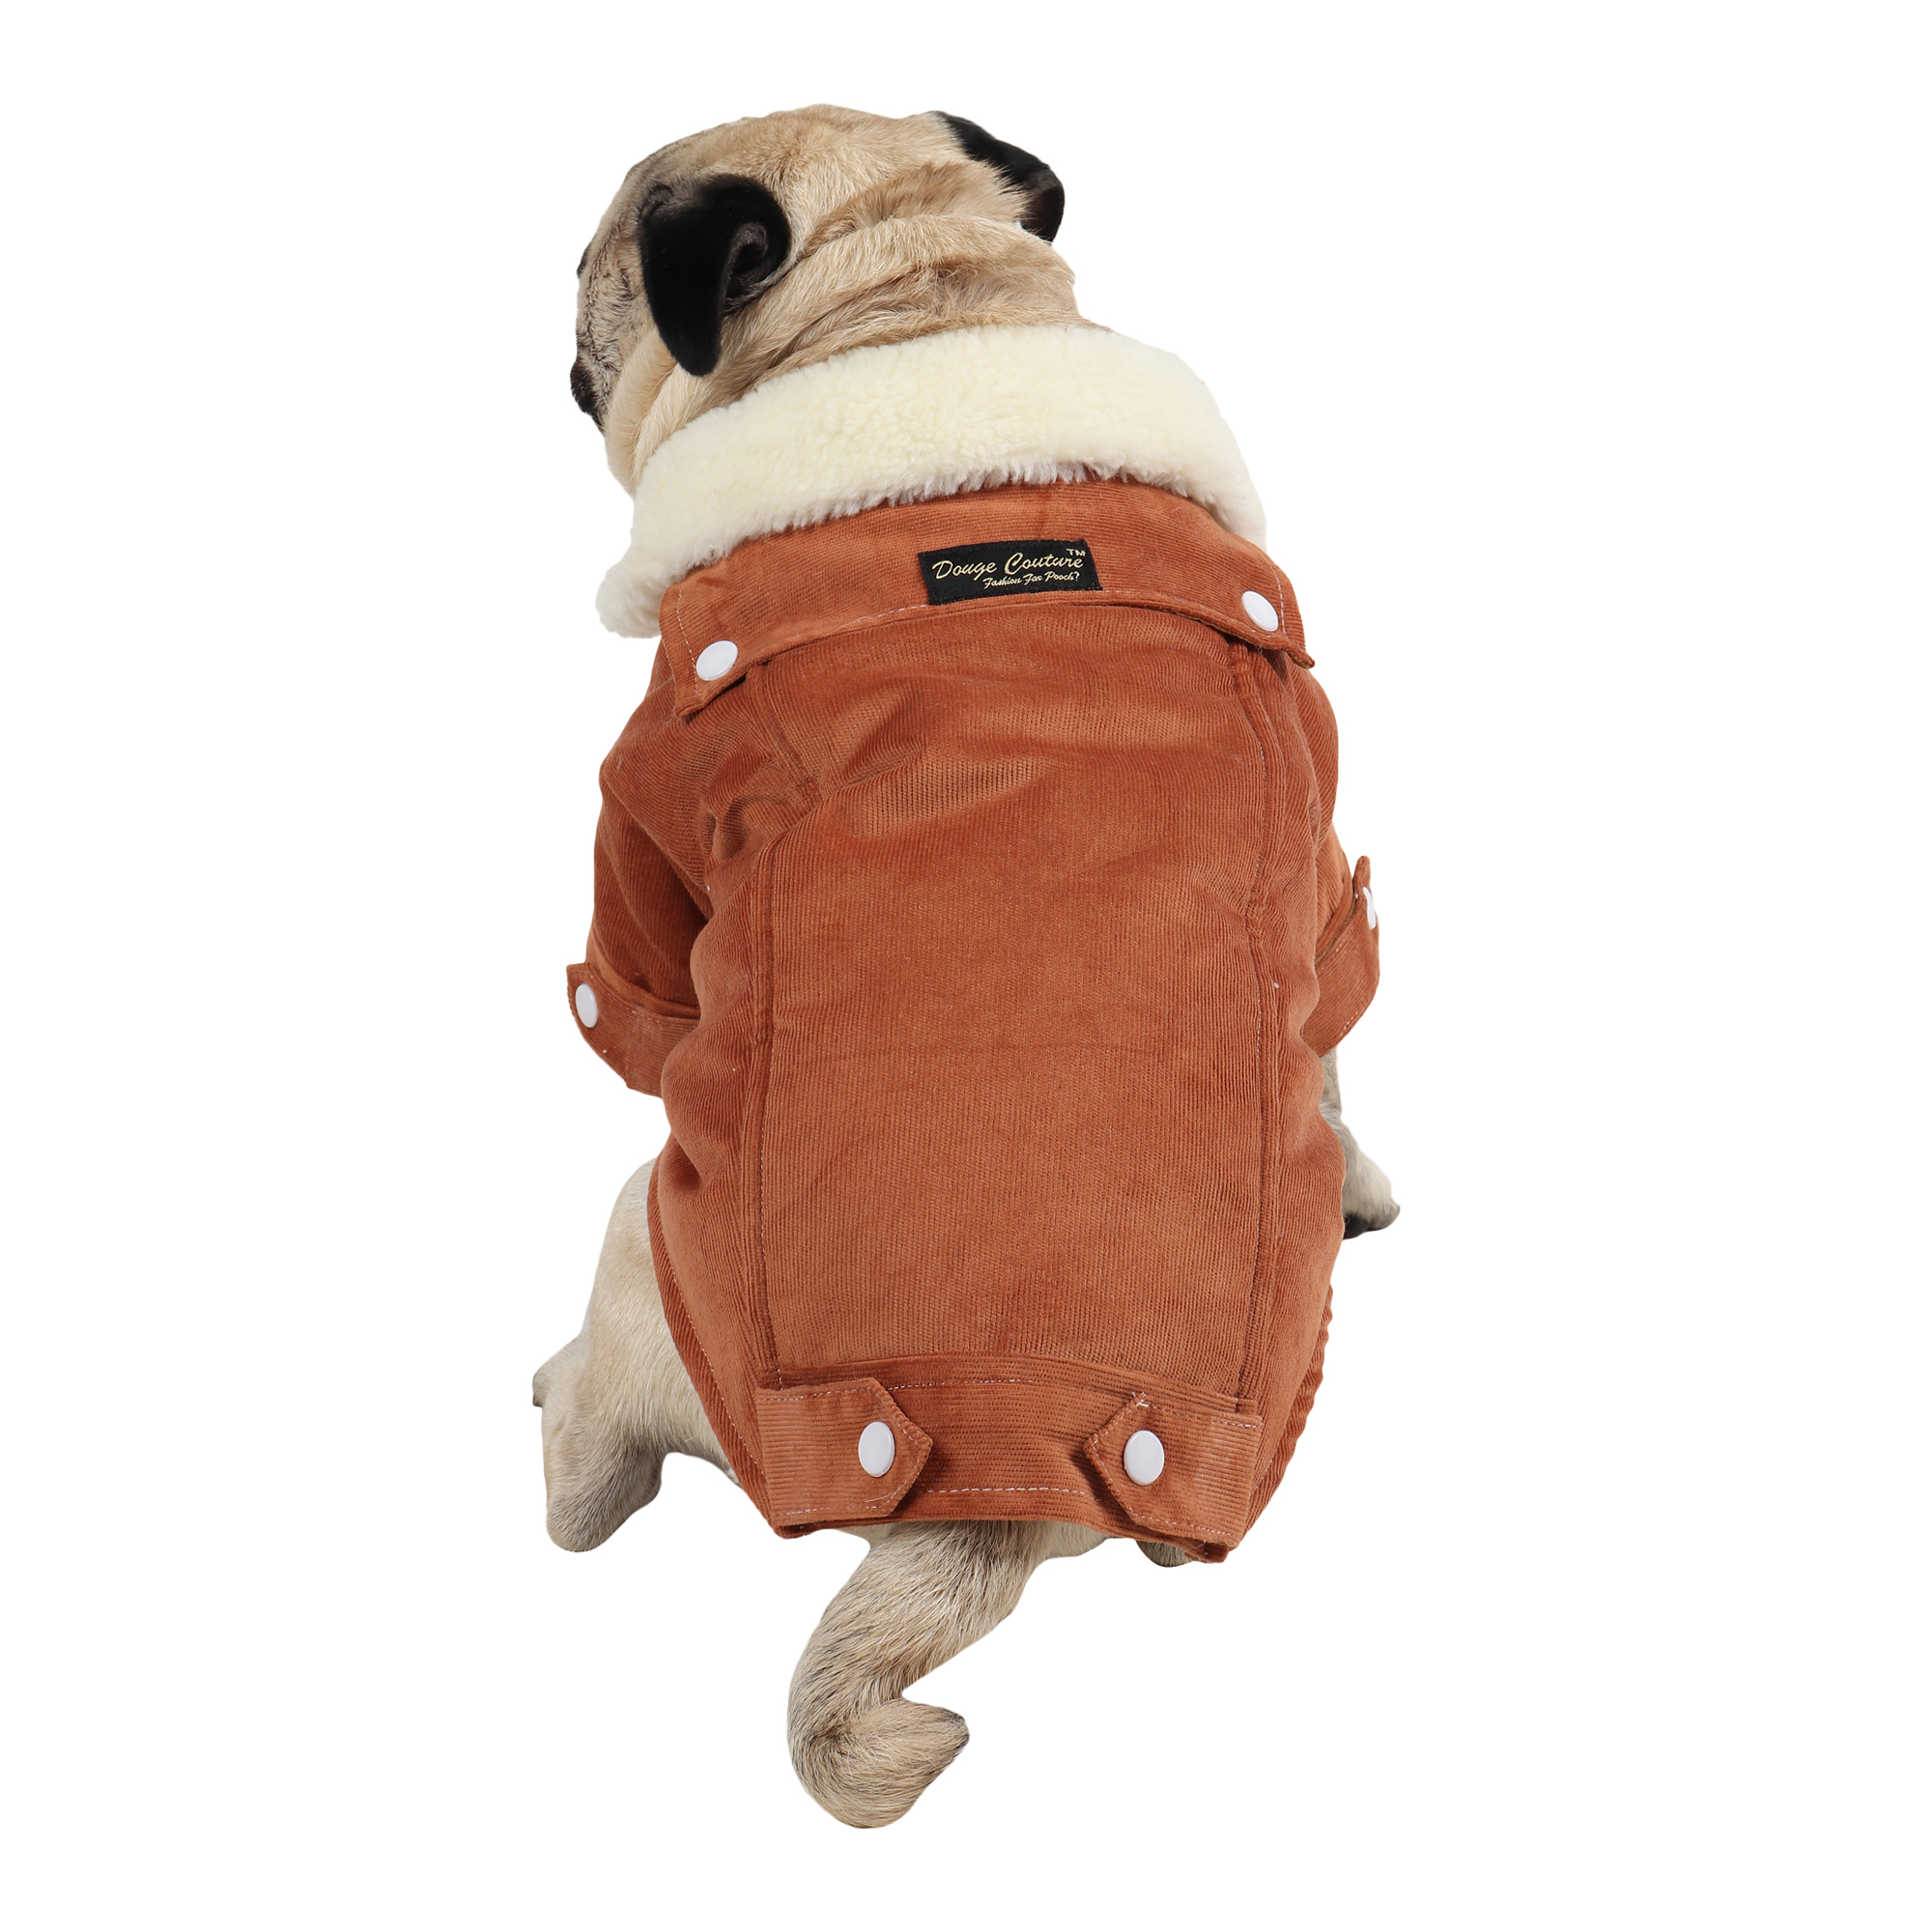 Douge Couture winter warm corduroy jackt for all dogs for cold weather (brown)